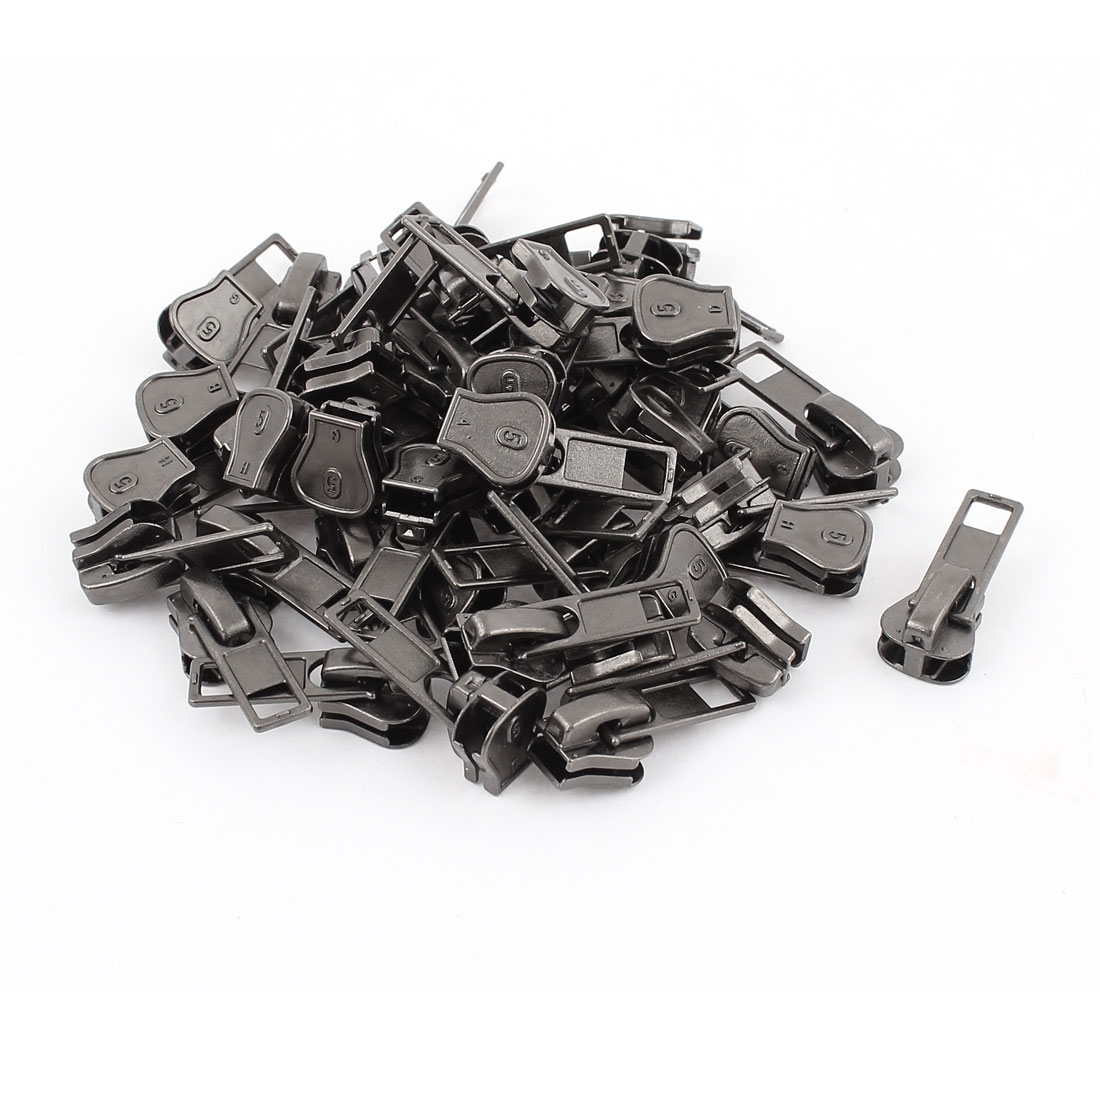 Unique Bargains Clothes Jackets Tents Purses Pull Tab Zipper Slider Repair Kit Gray 50 PCS